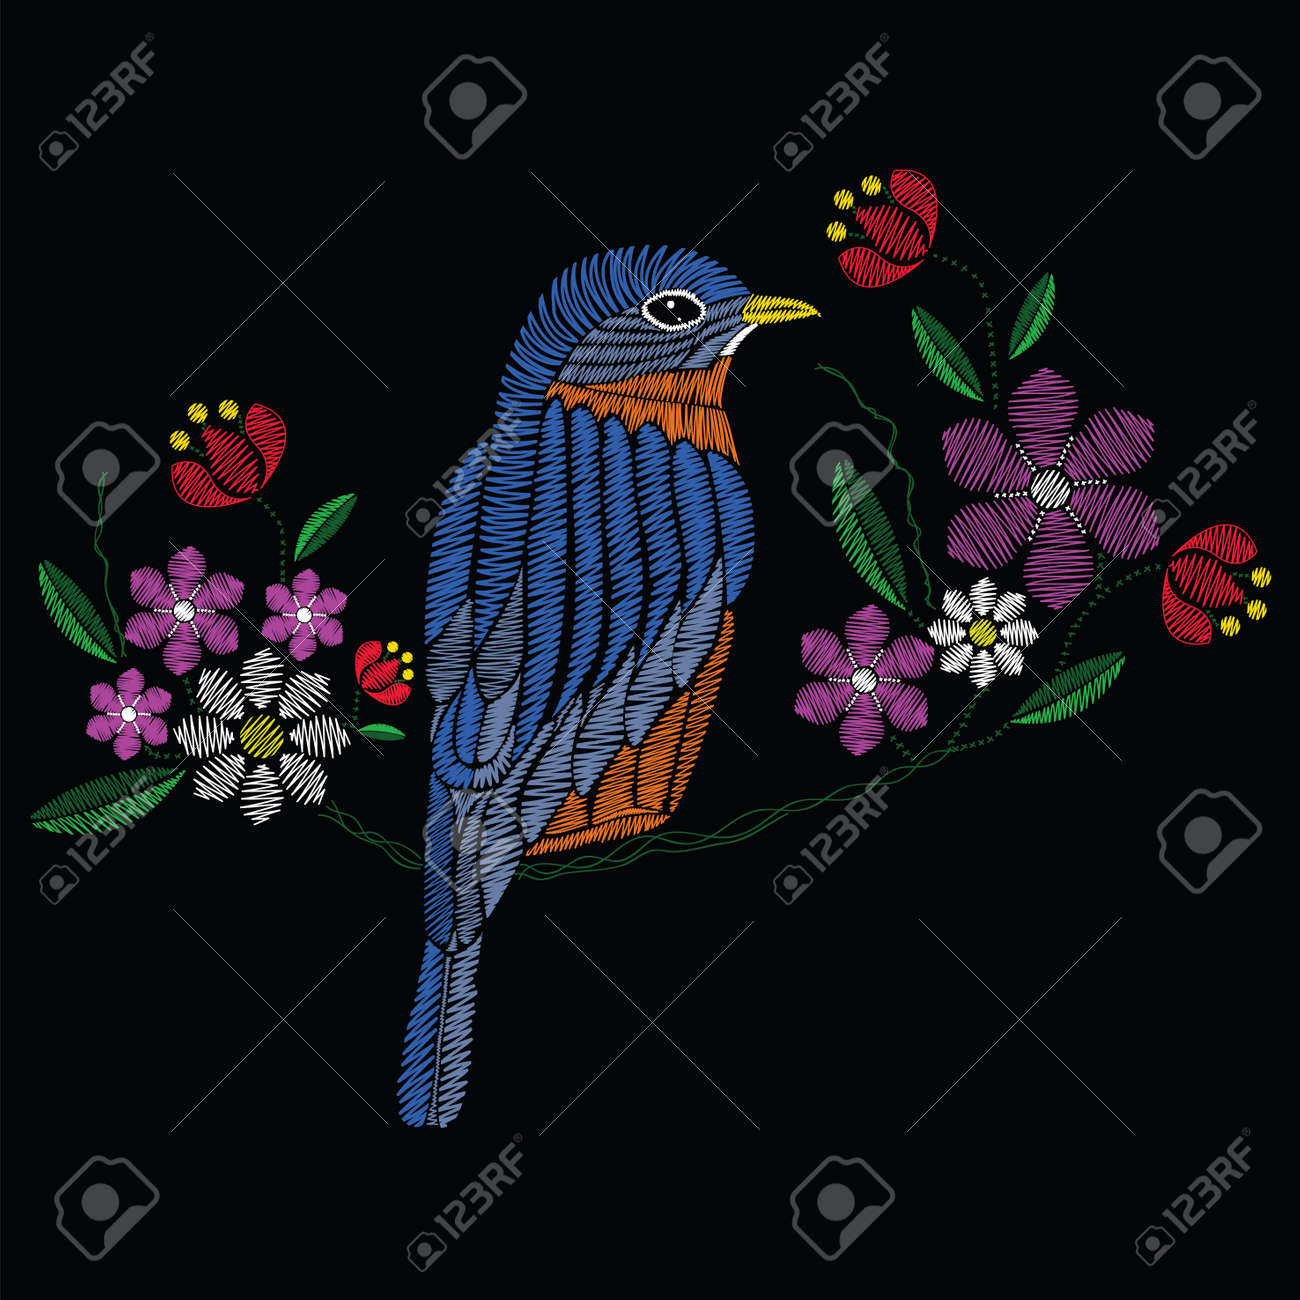 Vector illustration embroidery stitches with bluebird chamomile, spring flowers, branches in color. Fashion ornament on black background for textile and fabric traditional floral decoration. Hand drawn illustration. - 80329081